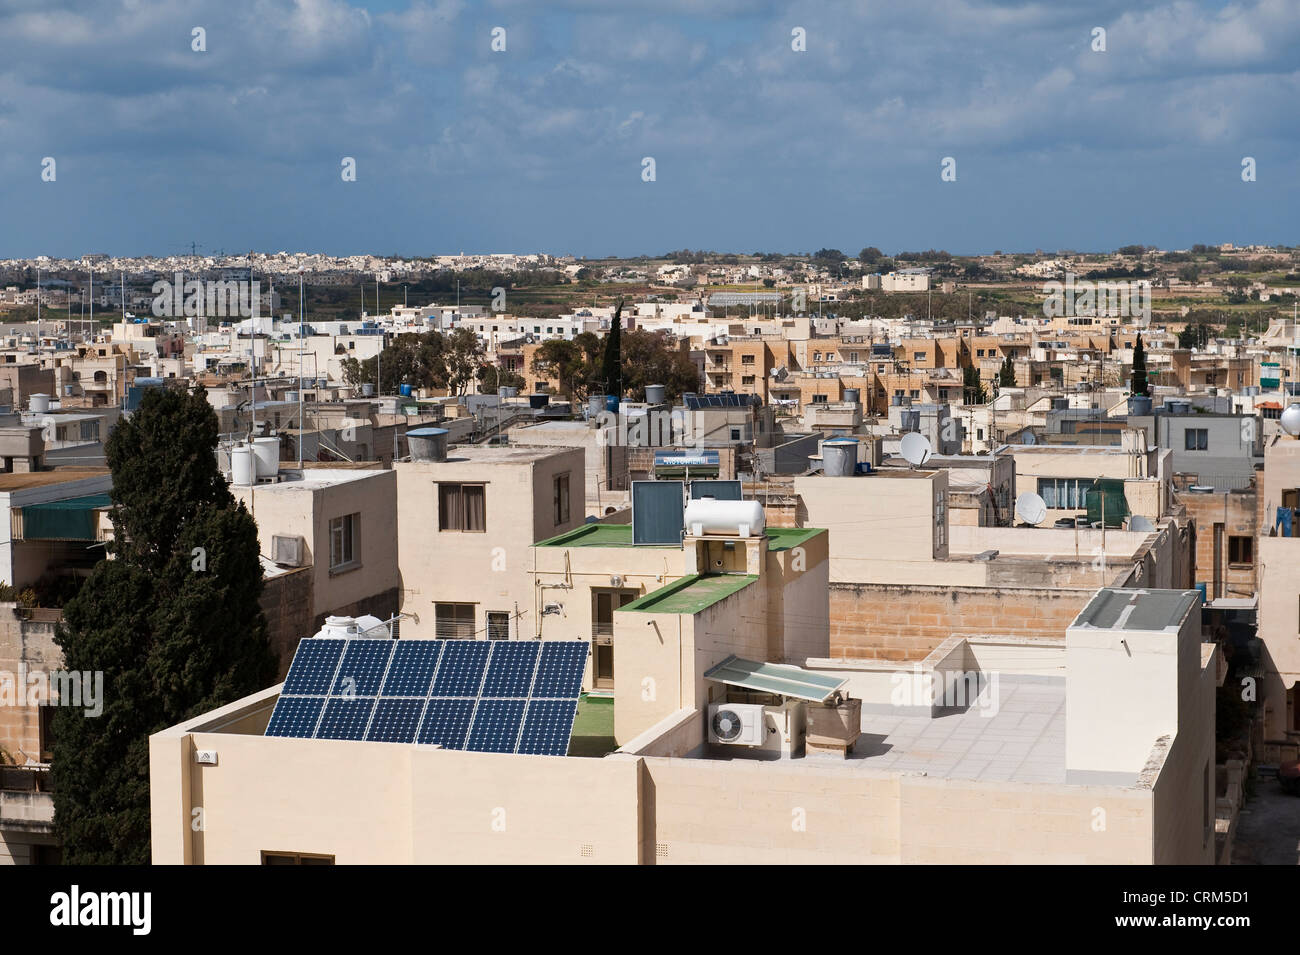 Zejtun, Malta. A rooftop view shows many houses with passive solar water heaters and solar panels - Stock Image